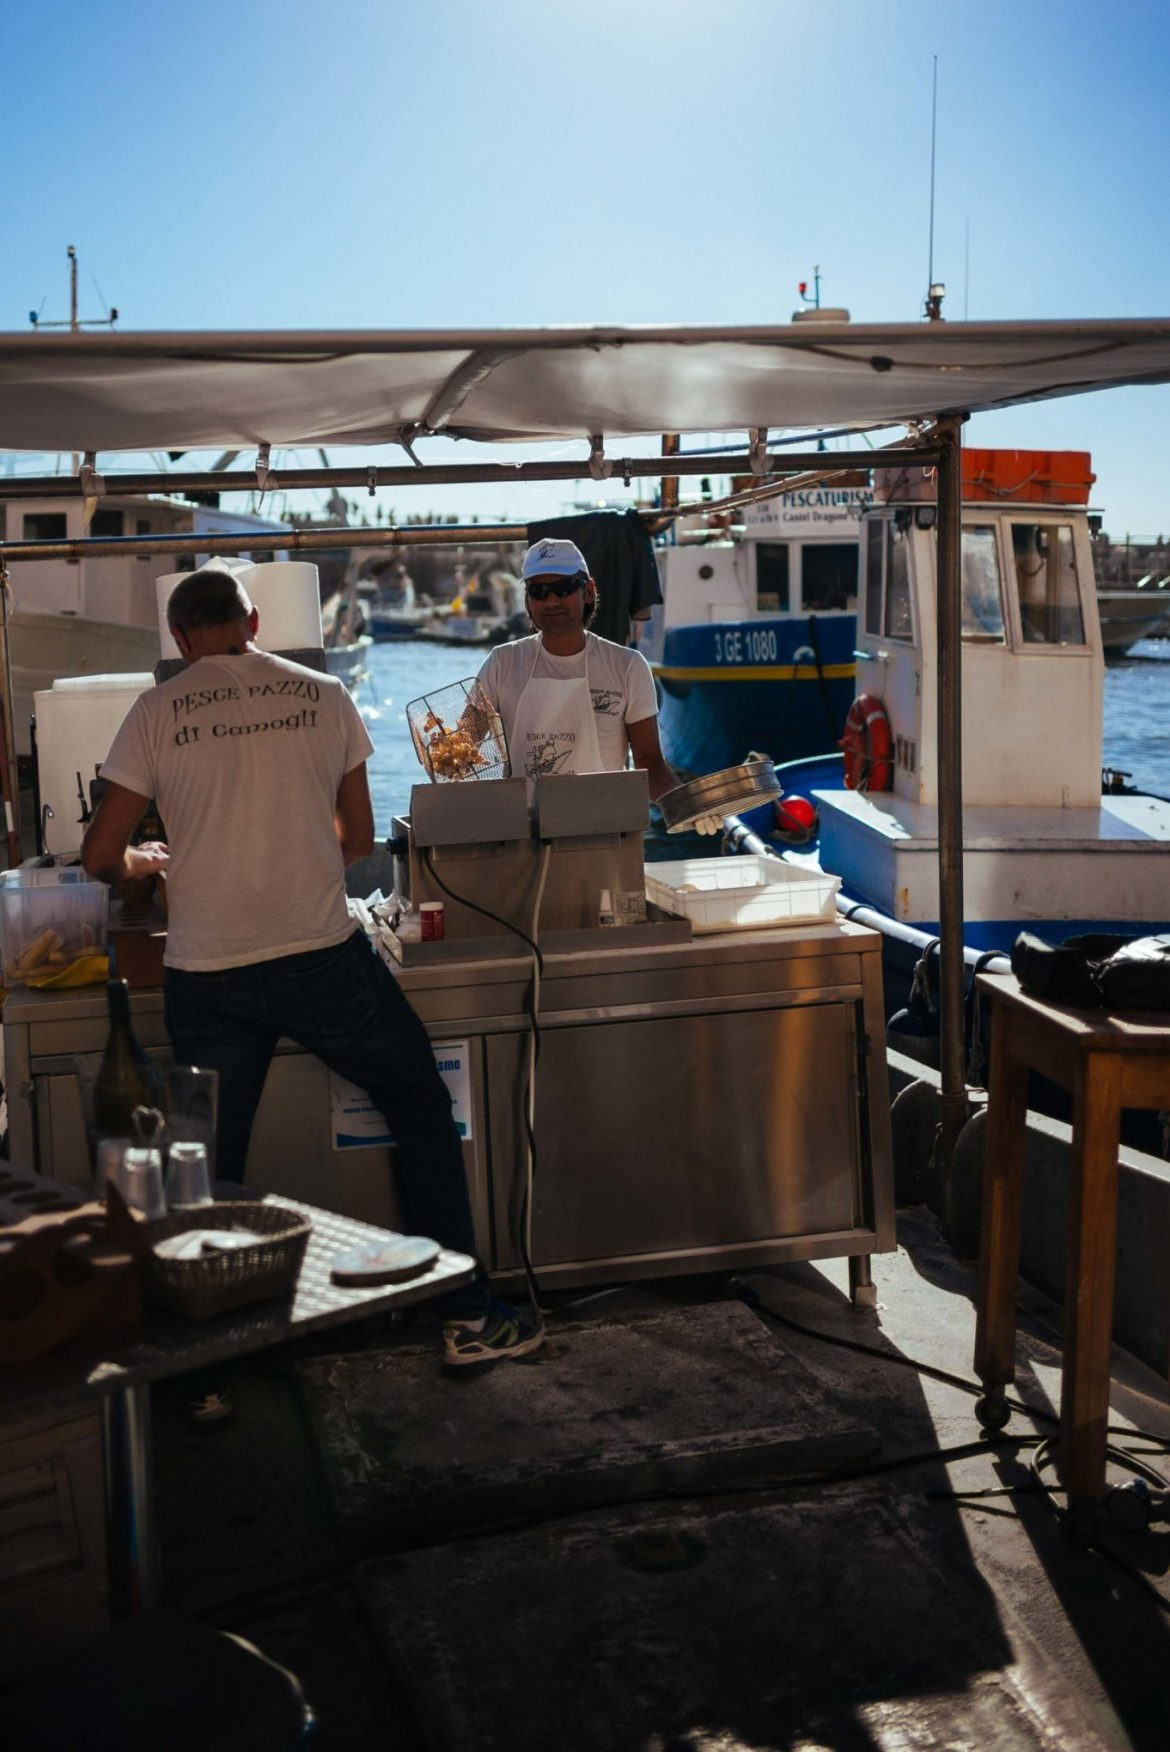 The Taste Edit recommends that you visit this Italian Beach town that no one knows about - Camogli, Italy. Fish is cooked and served from their boat.